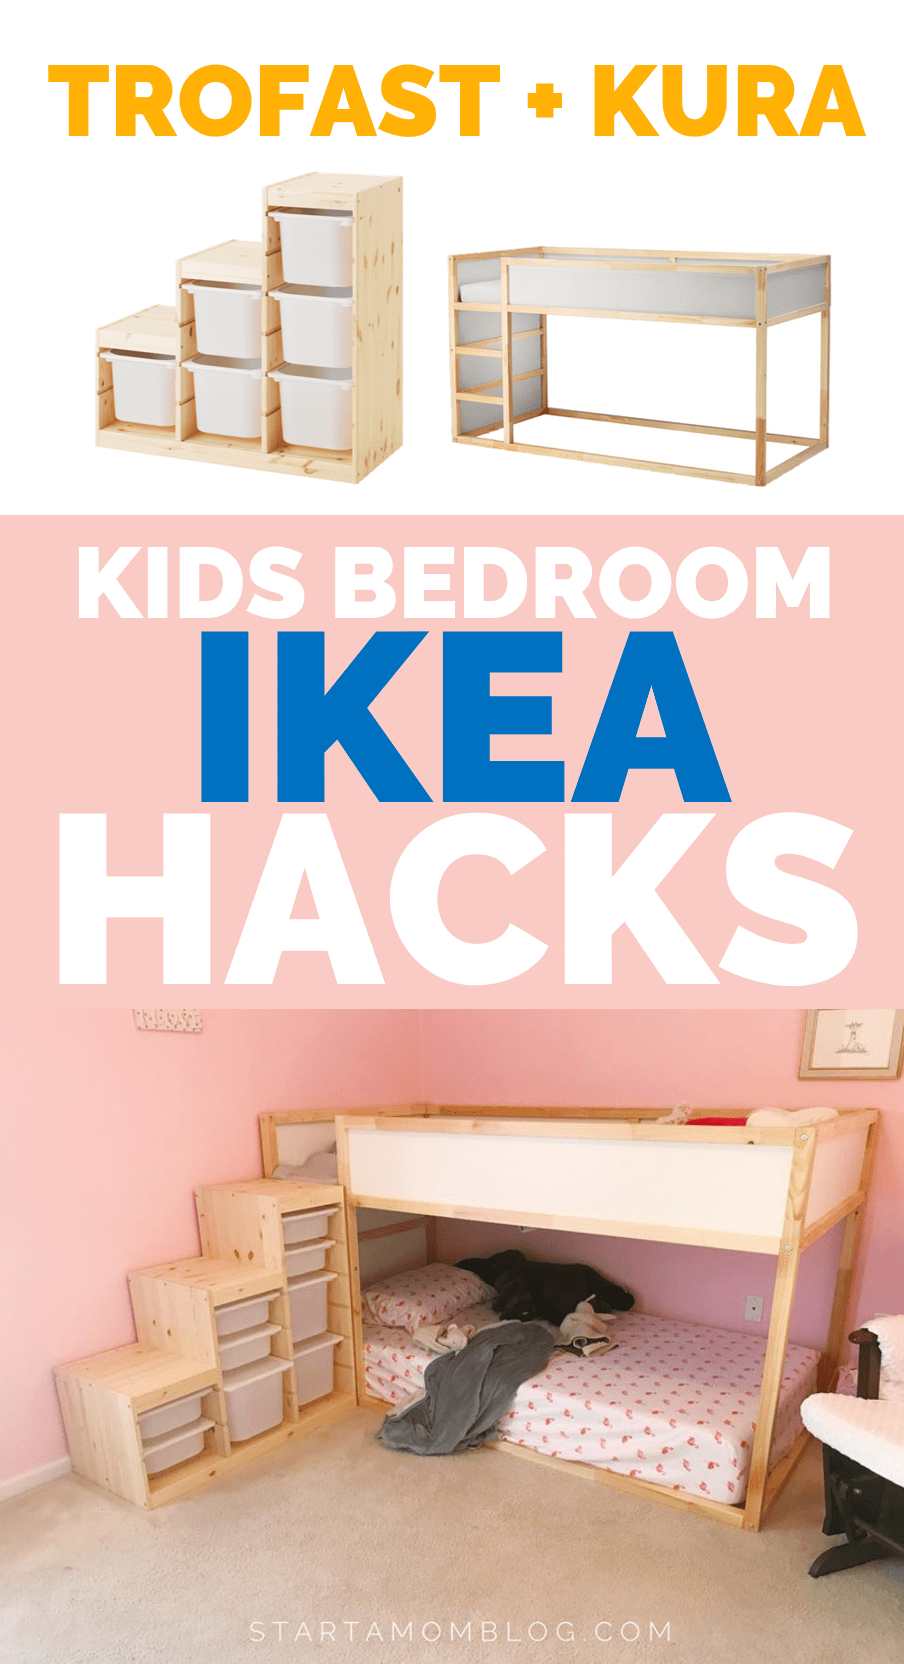 IKEA BEDROOM HACKS FOR KIDS TROFAST AND KURA